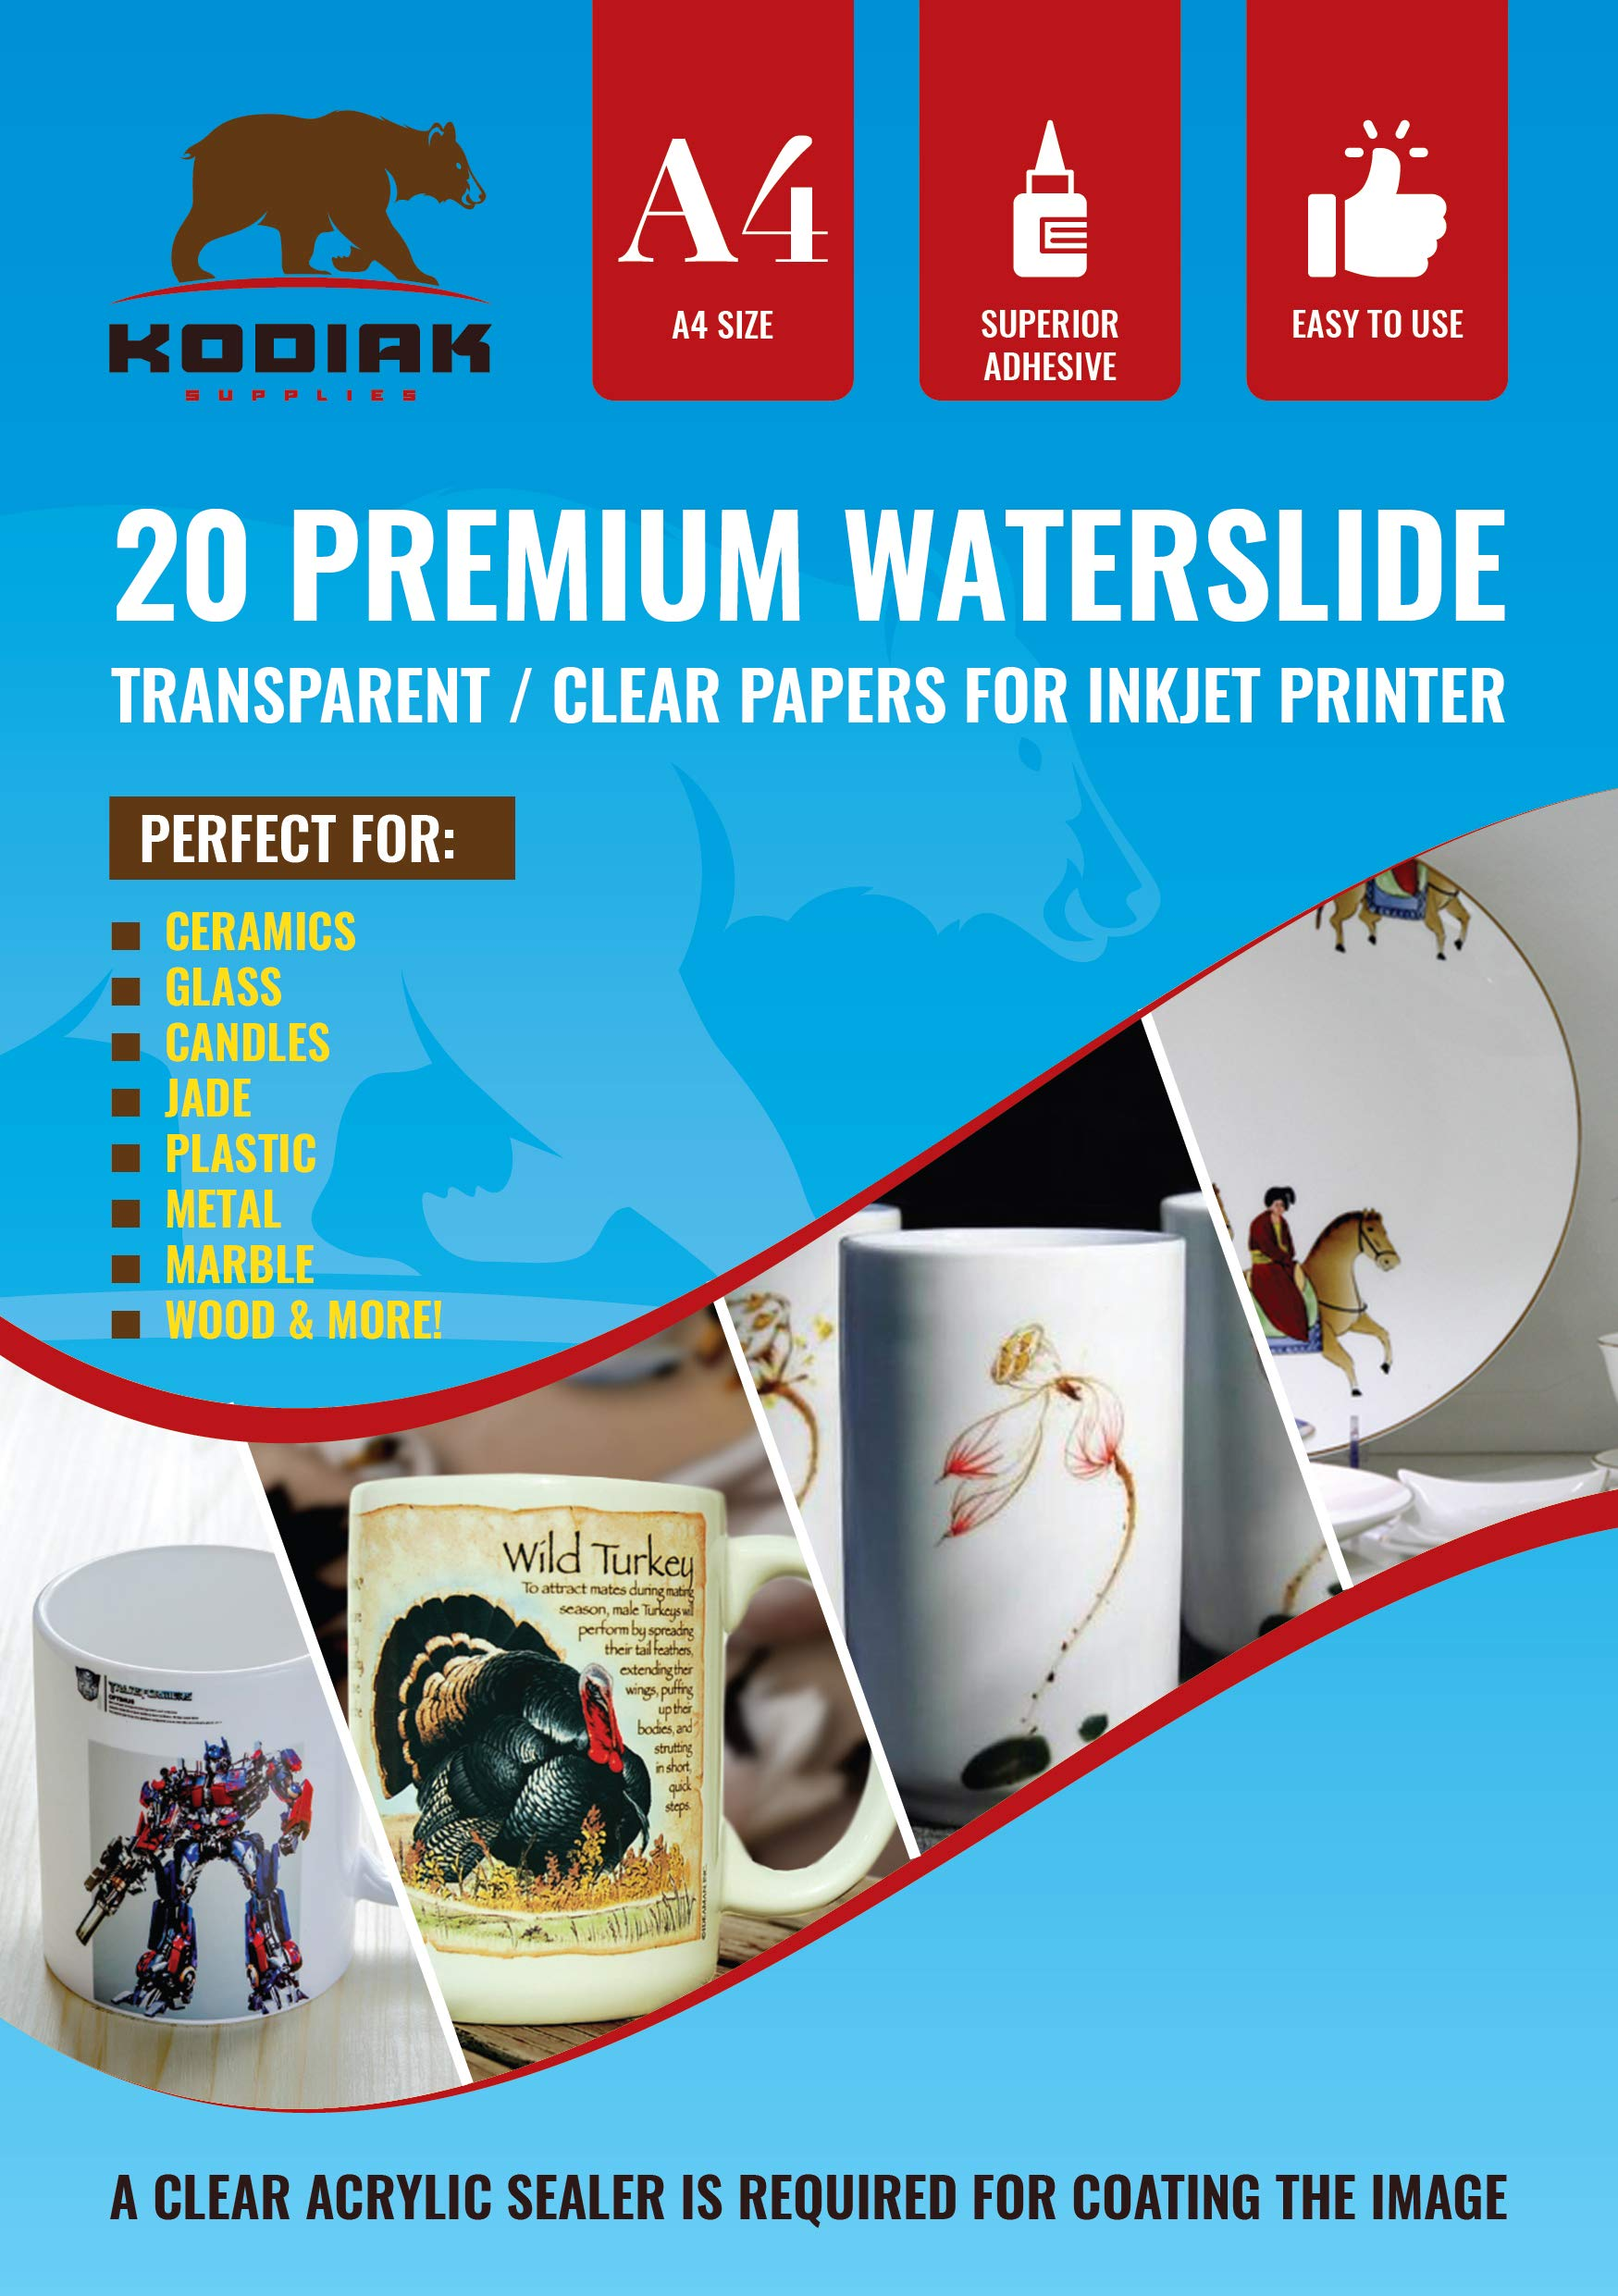 Kodiak Supplies A4 Waterslide Decal Paper INKJET Clear - 20 Sheets - DIY A4 water slide Transfer CLEAR Printable Water Slide Decals A4 20 Sheets (B07CZ76391) (WSDP)